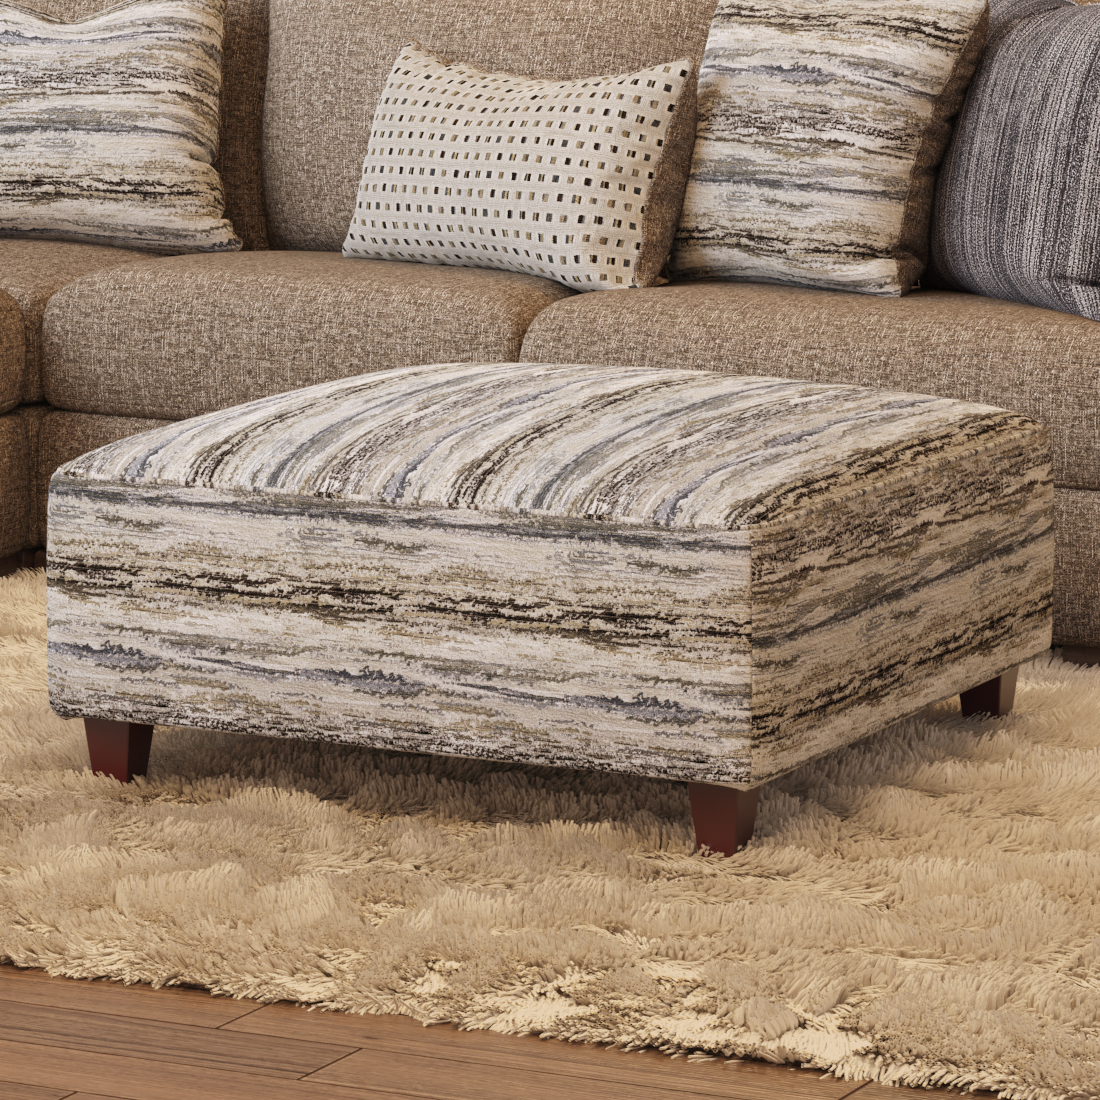 51 MARTY FOSSIL Cocktail Ottoman by VFM Signature at Virginia Furniture Market